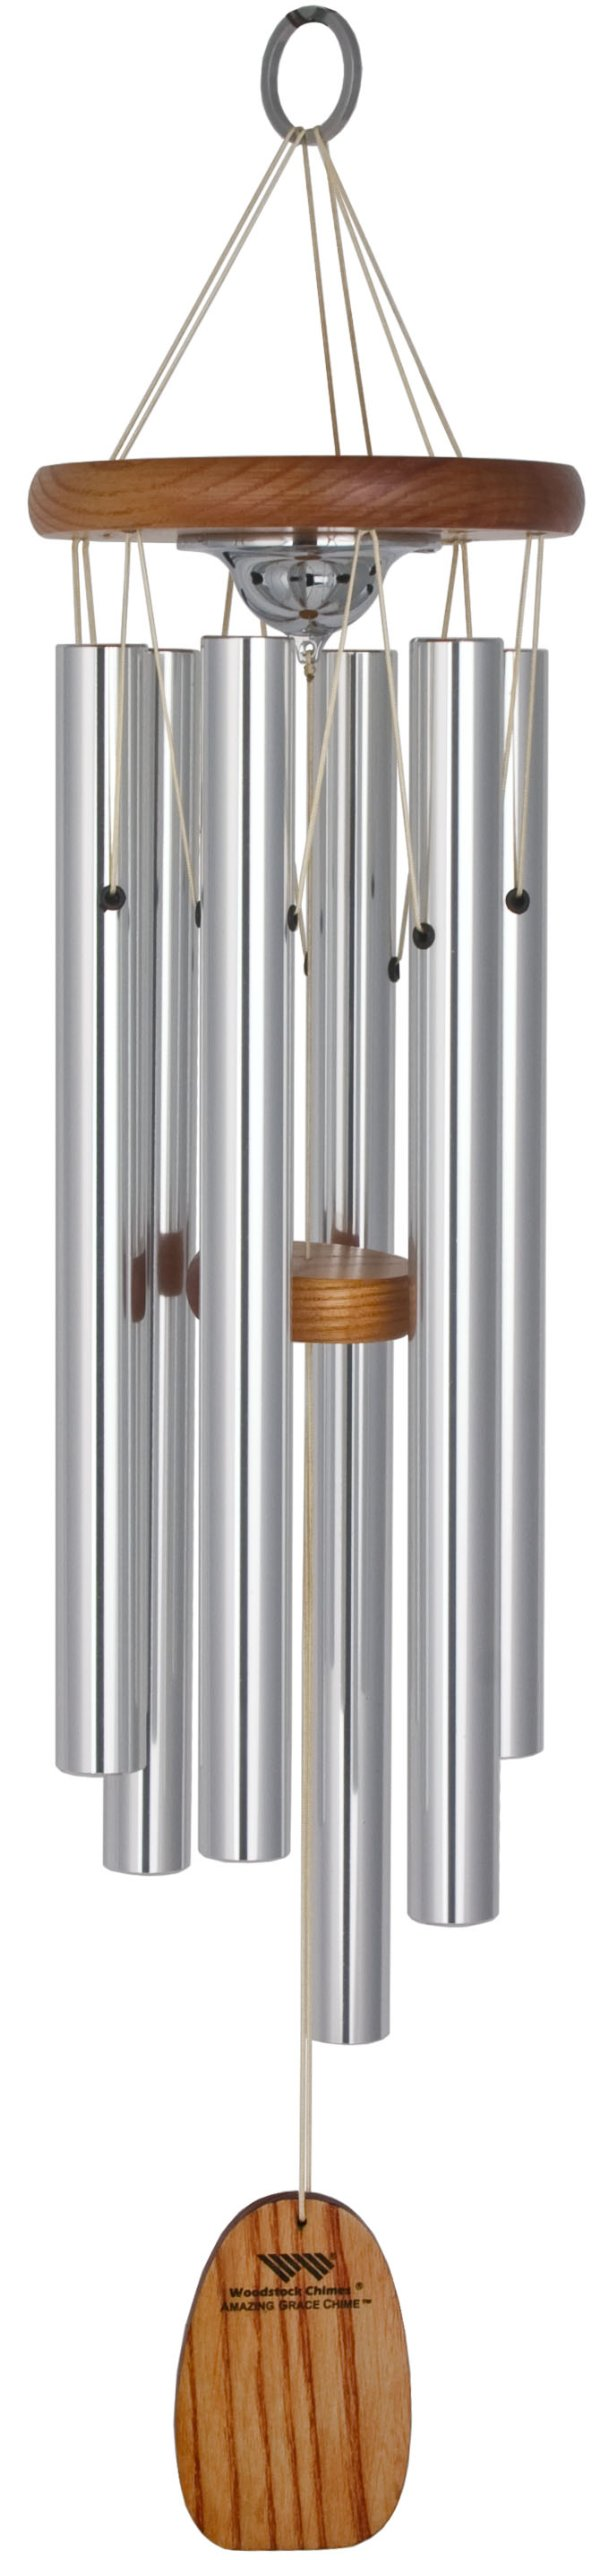 Woodstock Chimes AGMU Amazing Grace Chime, Urn Memorial